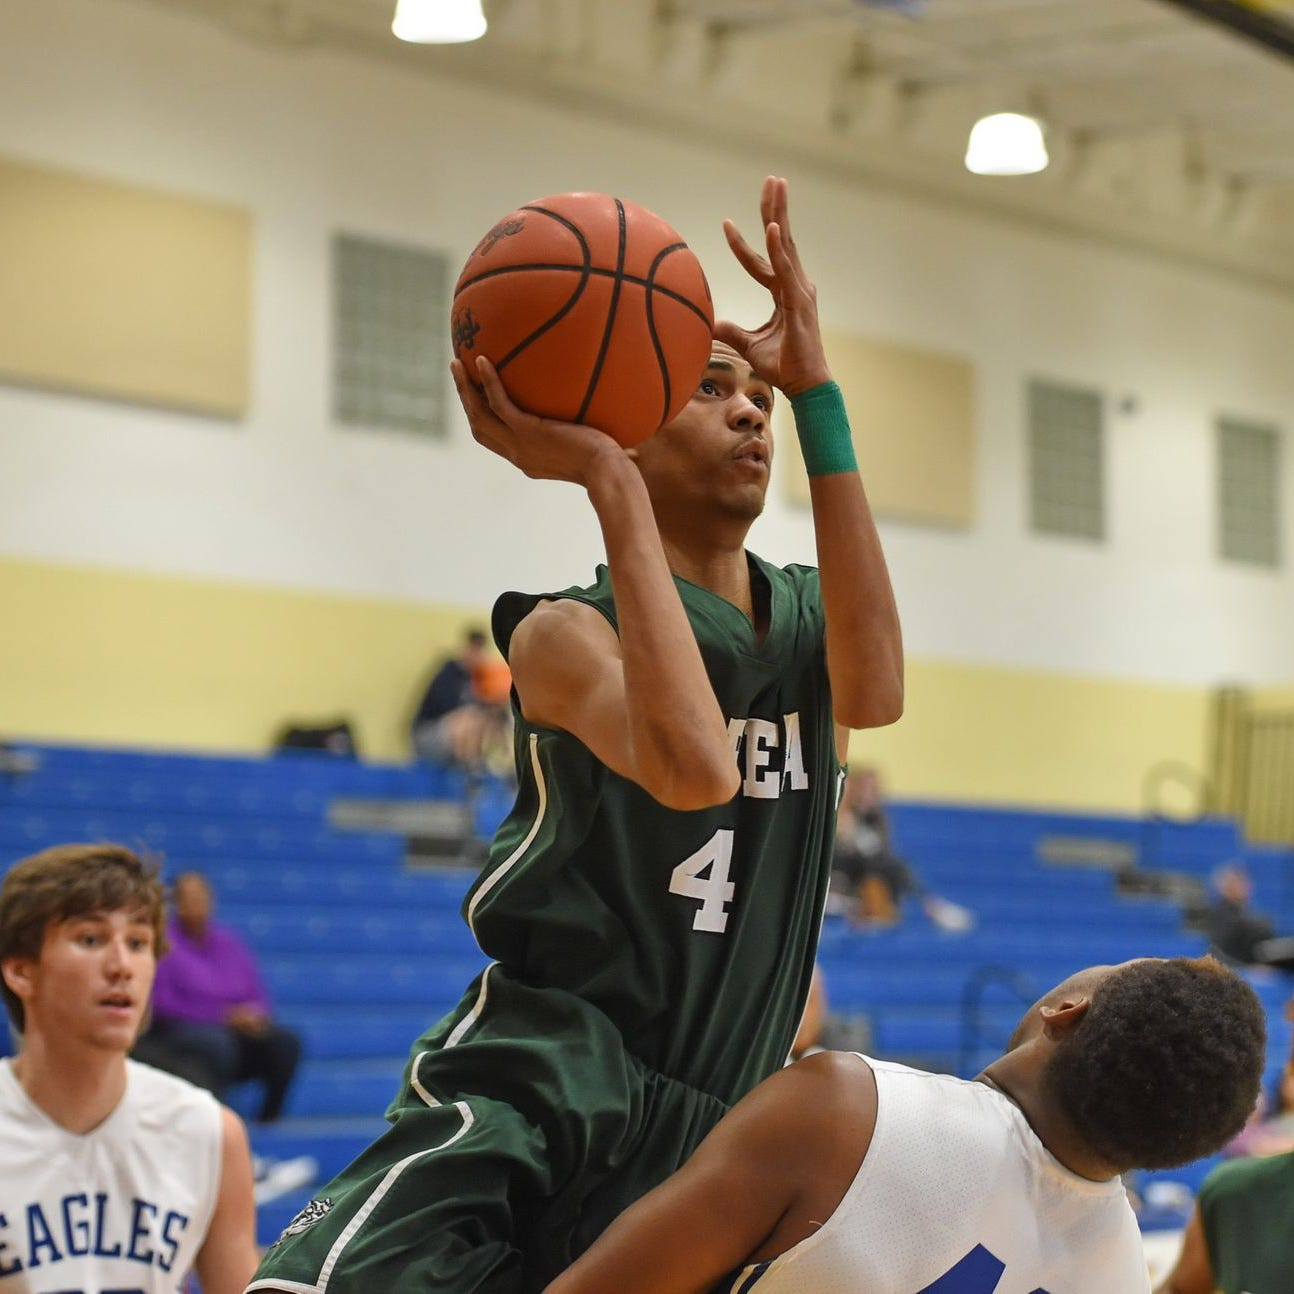 Jermarkus Boozer, shown in an earlier game against Eastside, scored 14 points in Berea's loss at Carolina Friday night.